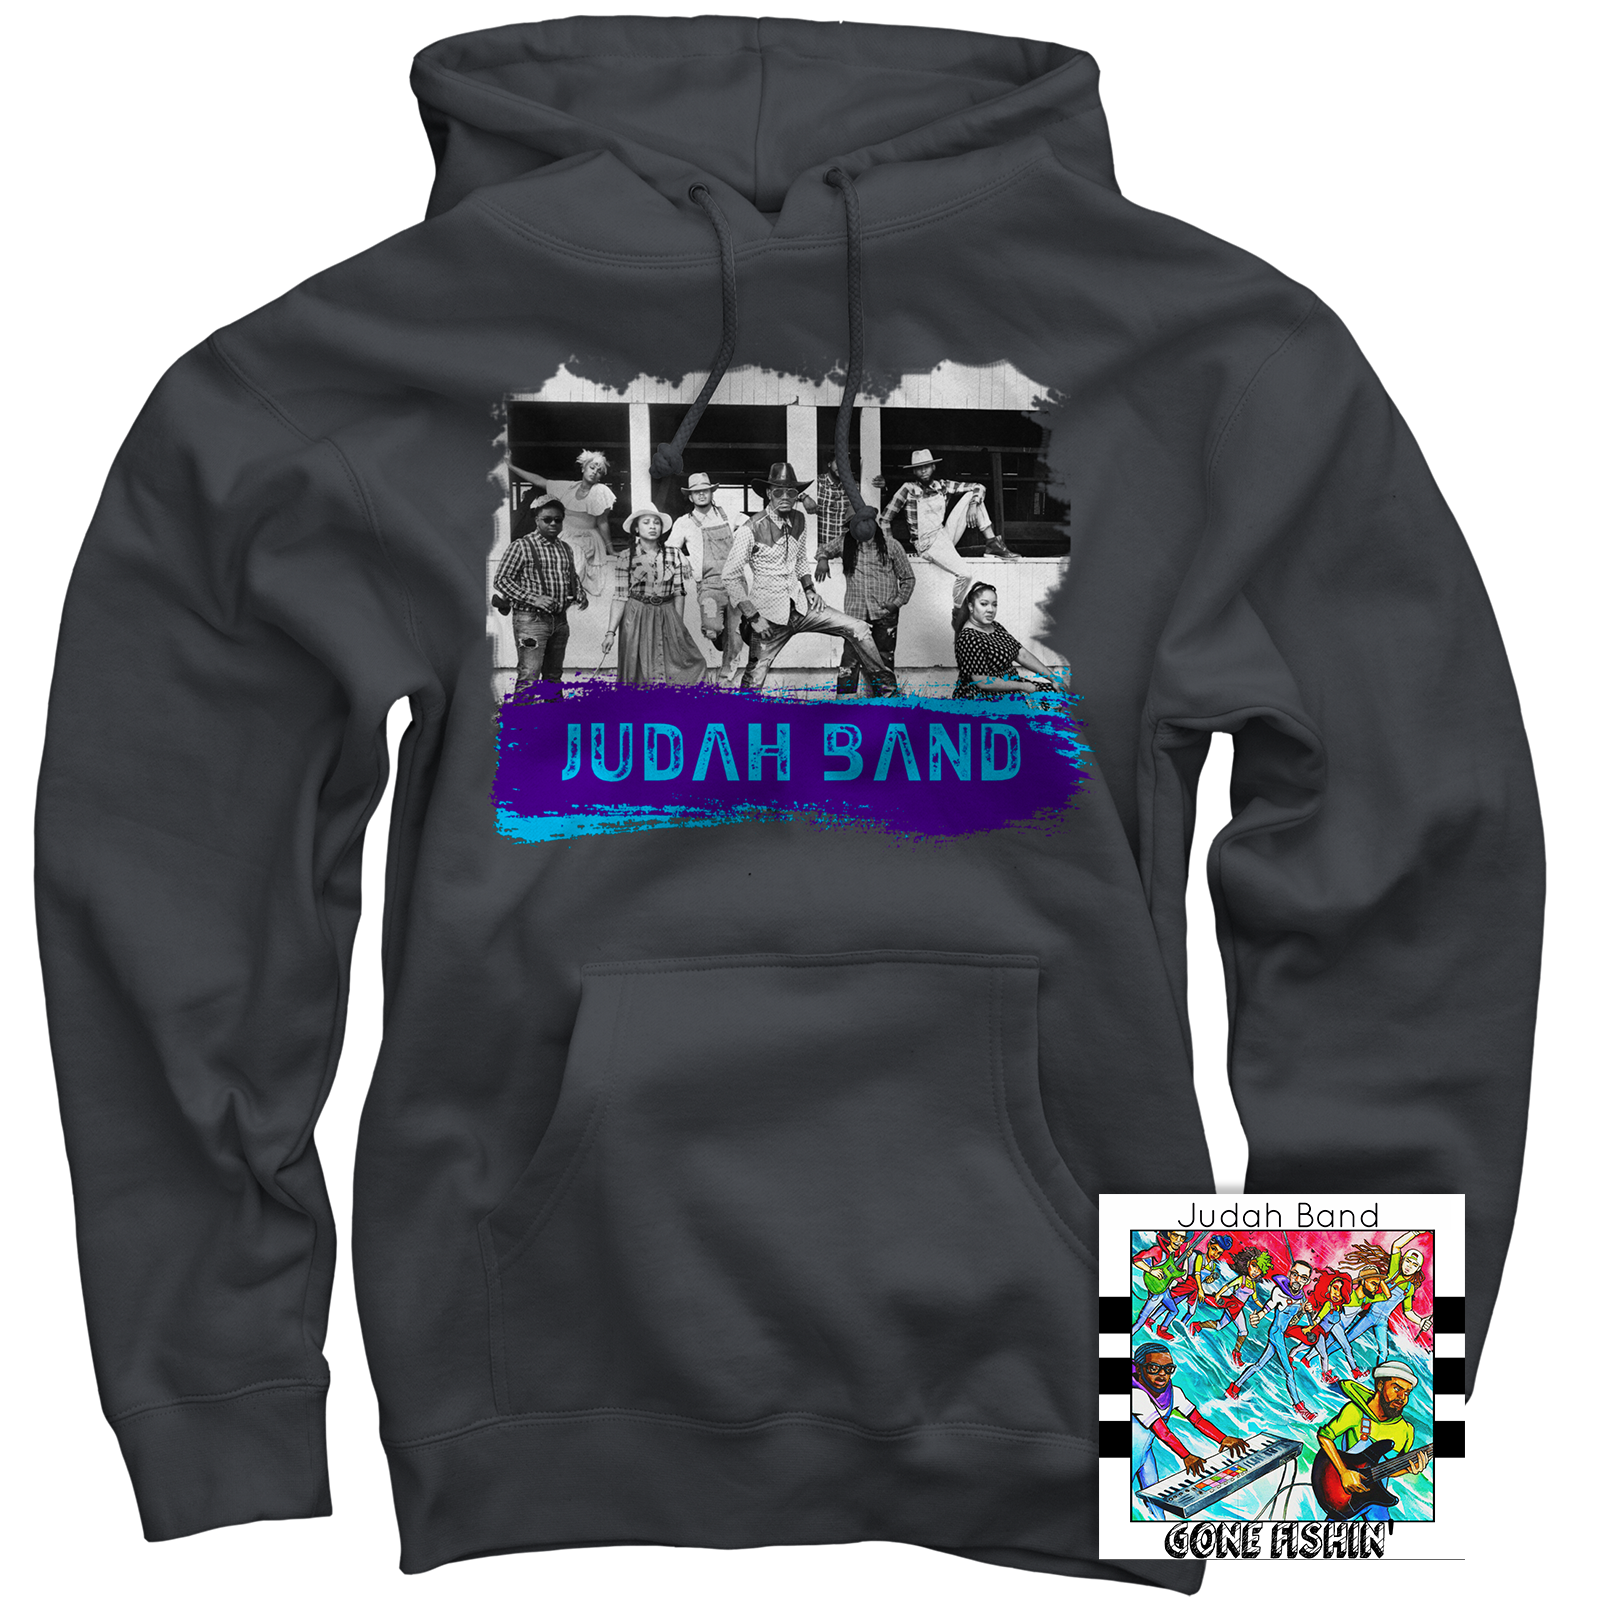 Judah Band Charcoal Pullover + Gone Fishin' CD